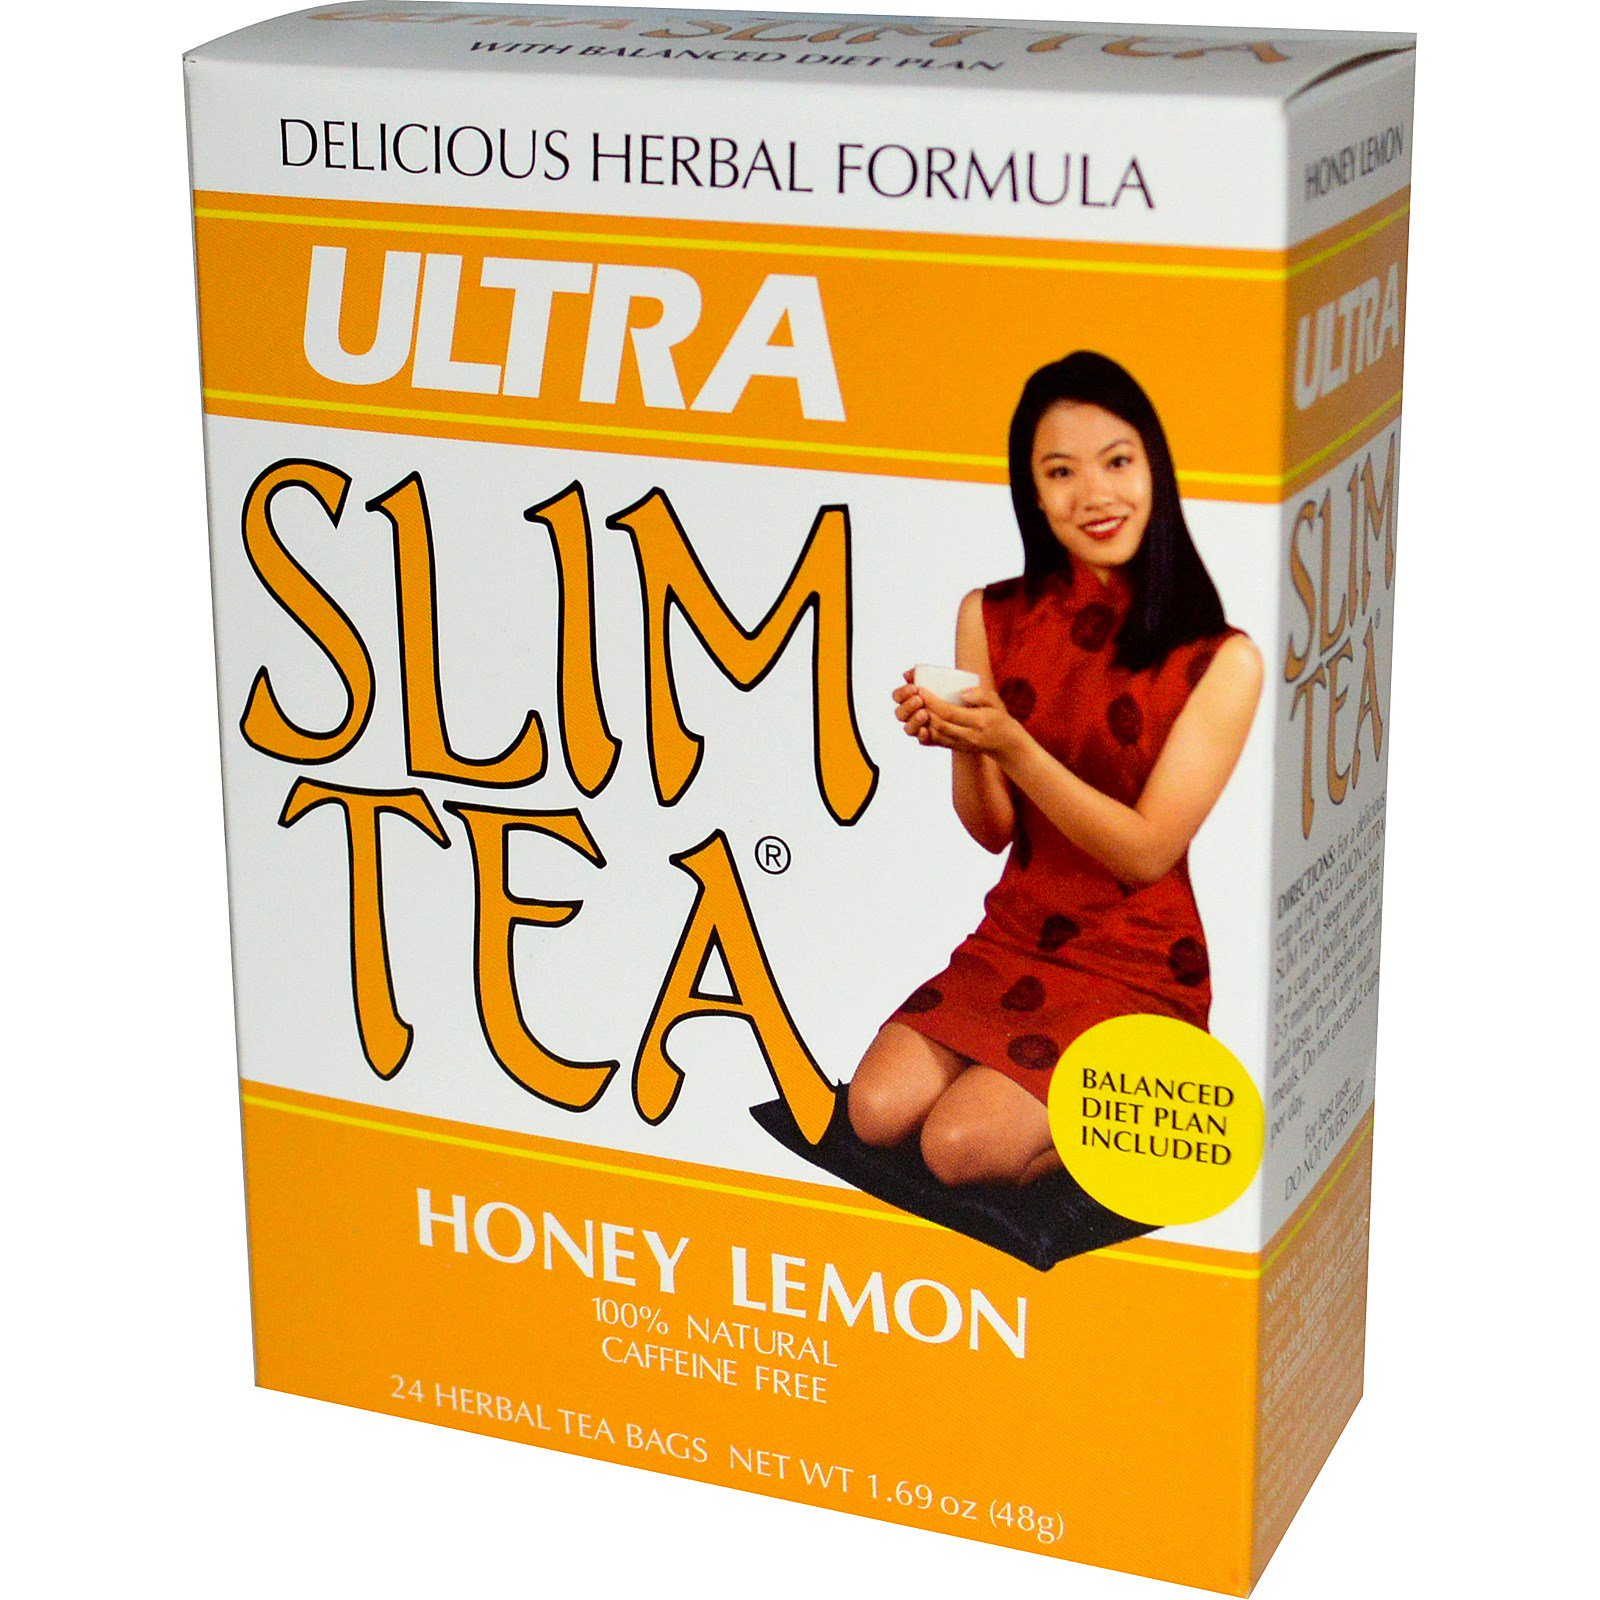 Hobe Labs Ultra Slim Tea Honey Lemon Caffeine Free 24 Herbal